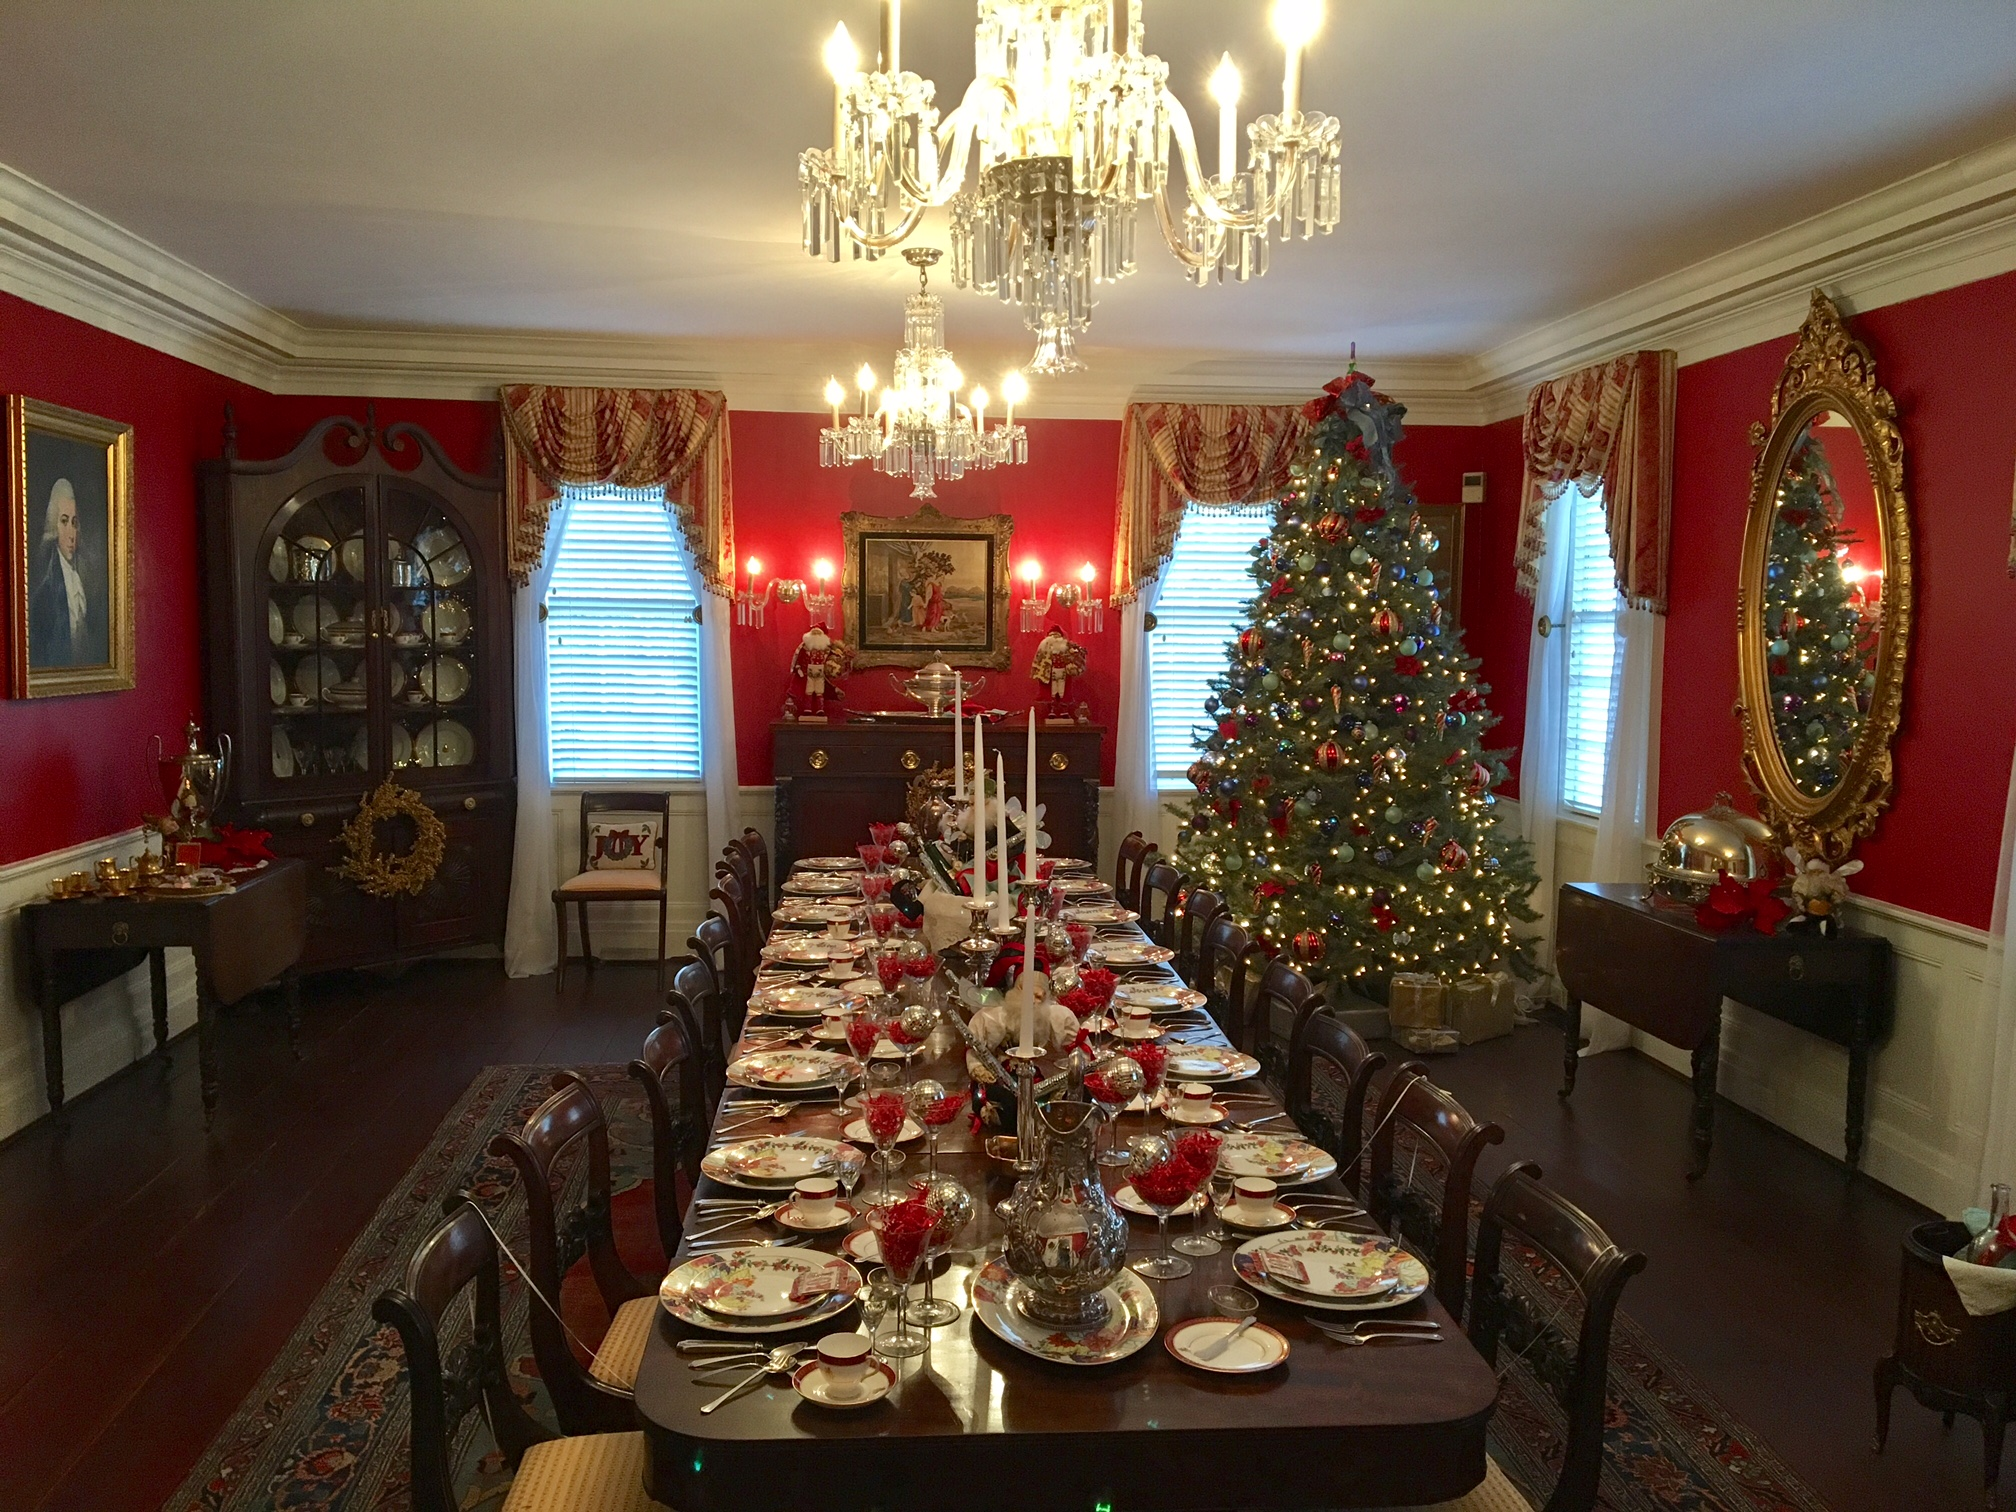 Decorated by Rebecca Ceron Martin, the Kaminski House dining room is all decked out for a festive feast!